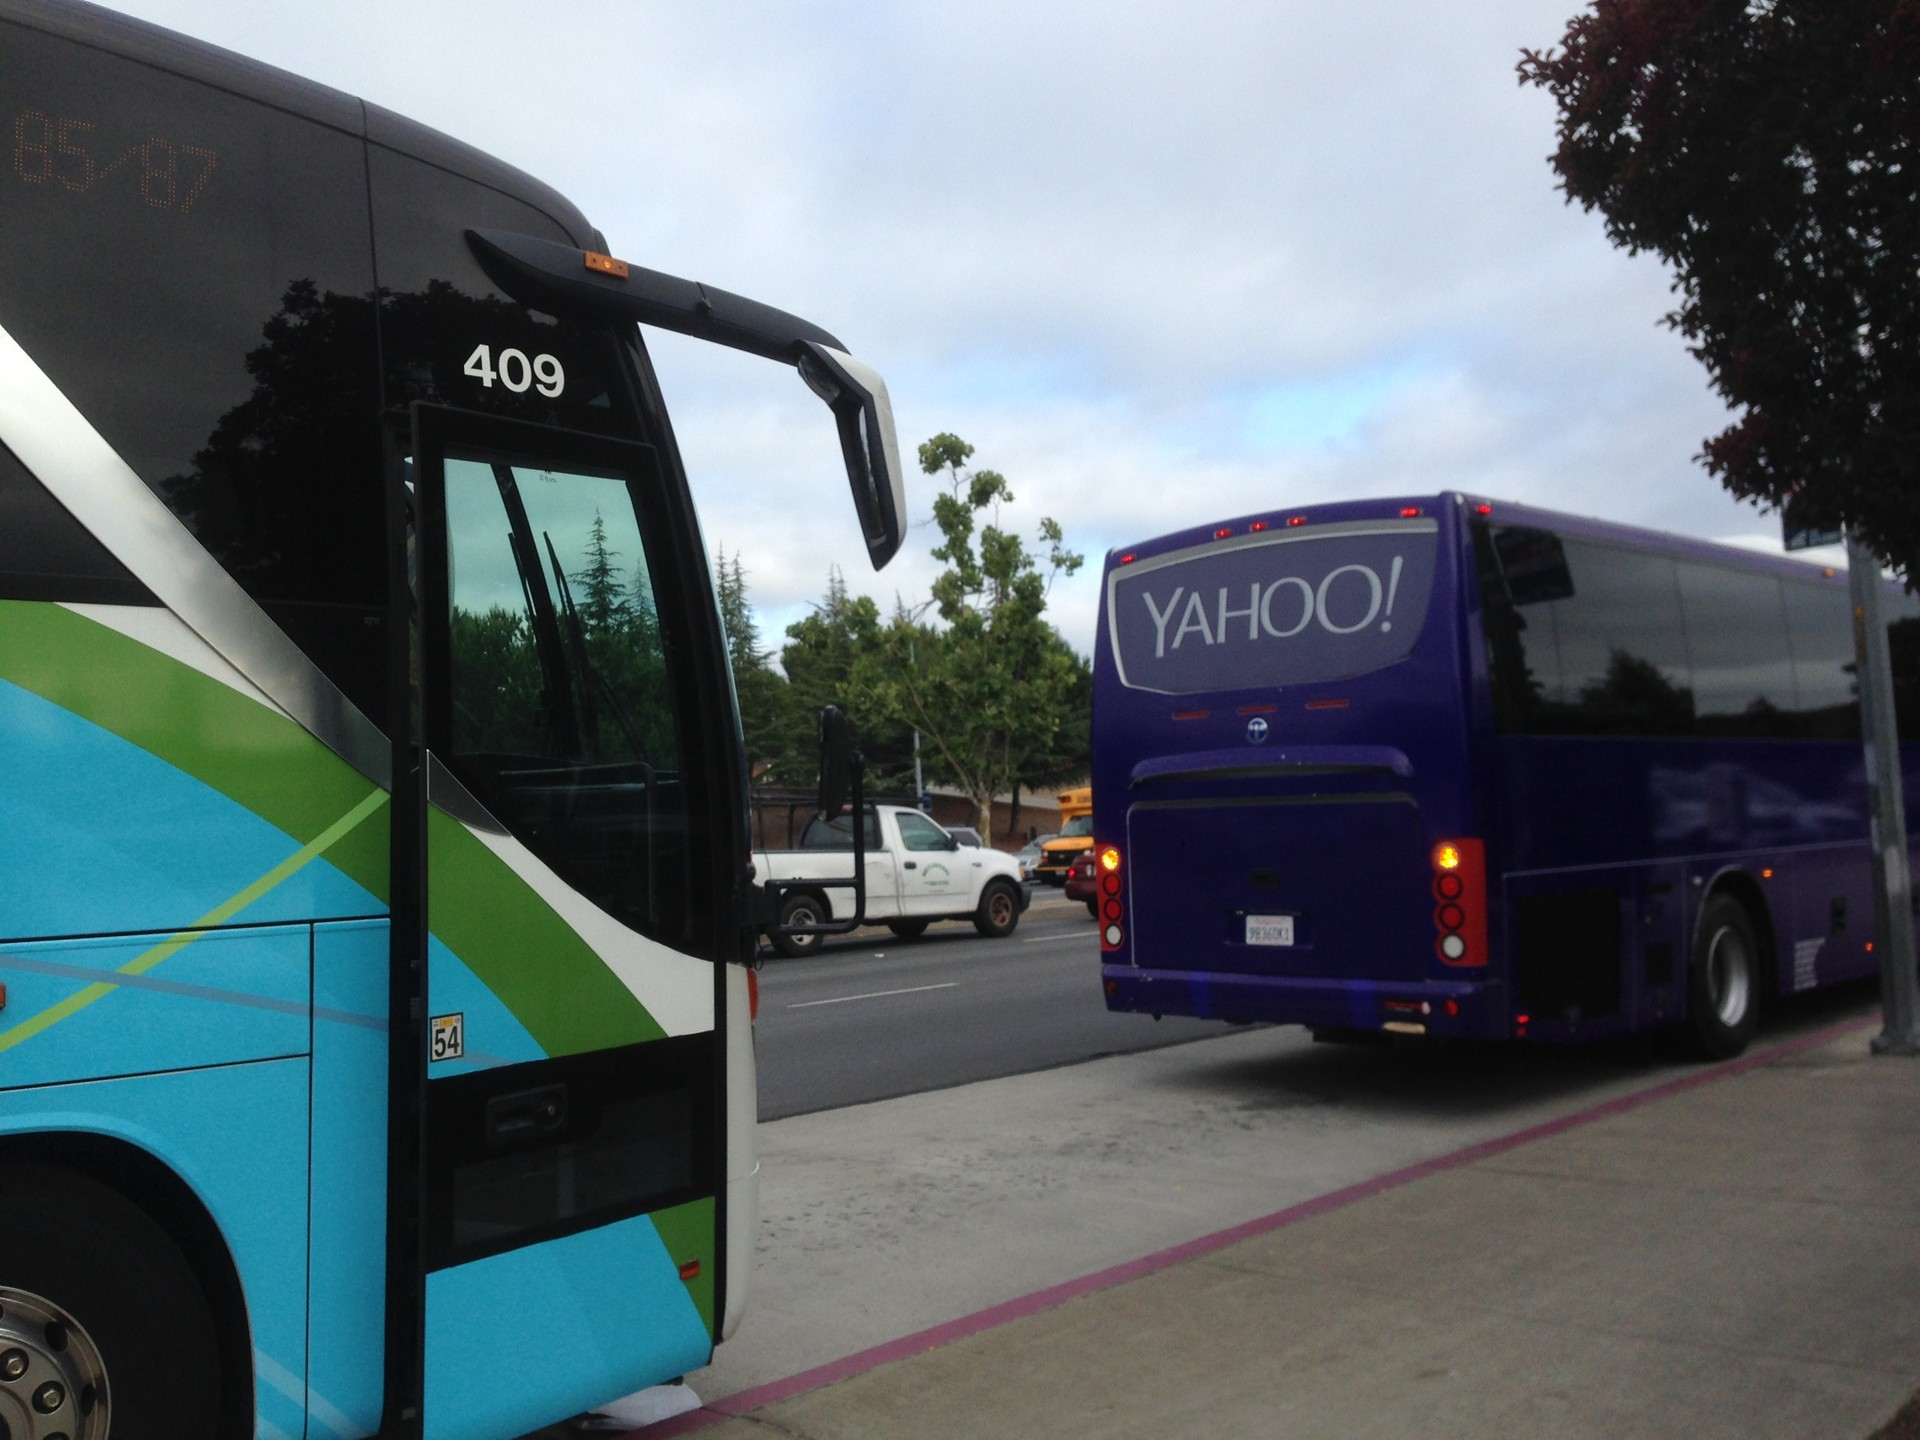 The Camden VTA park and ride is a popular stop for tech shuttles like these two, headed to Yahoo! and Genentech. To San Jose city officials, these buses are pulling away loaded with valuable sales tax revenues, as people who work in other cities likely shop there, too.